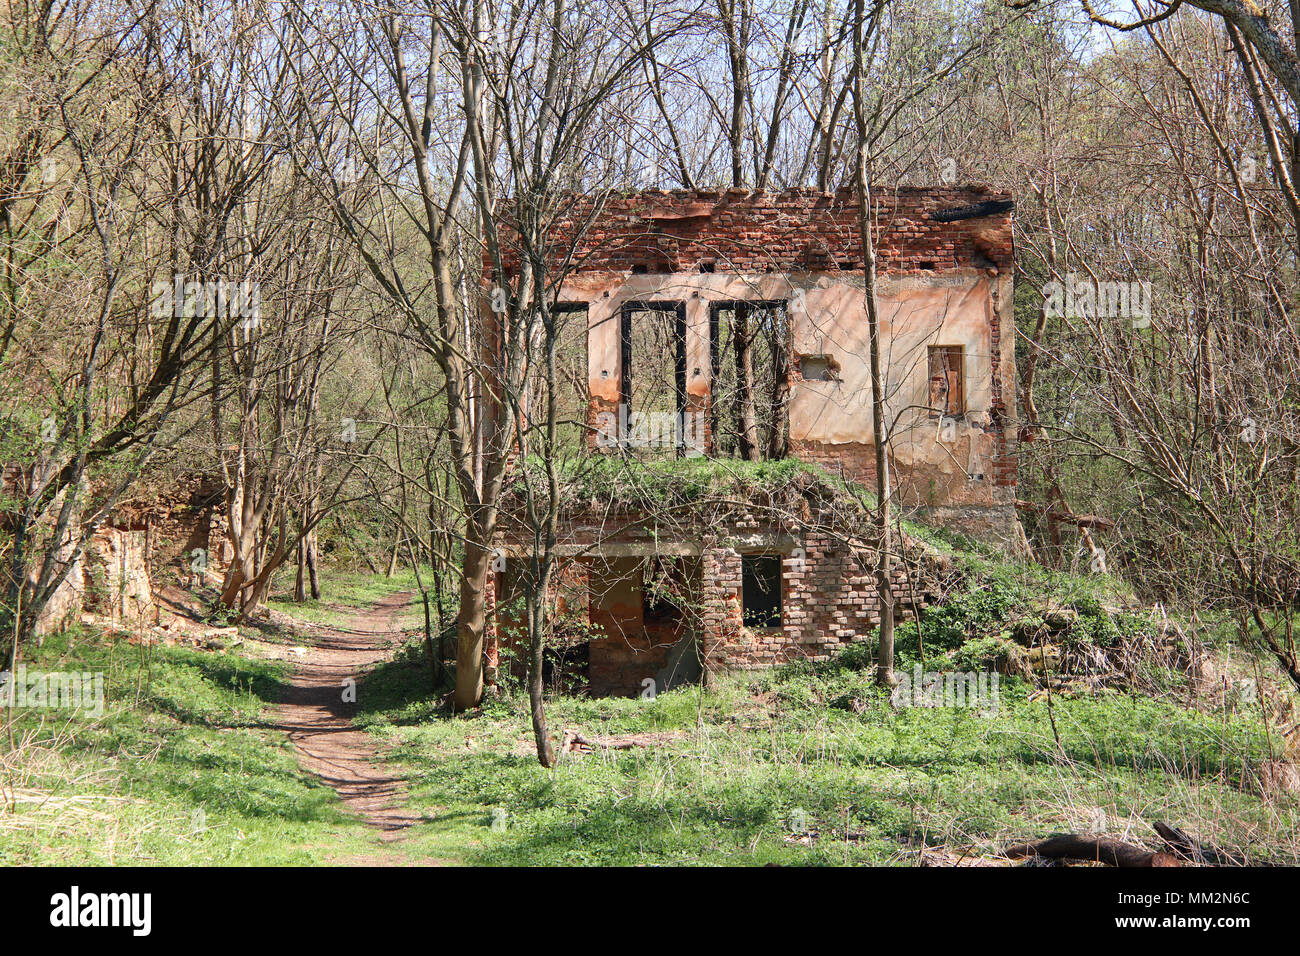 Ruins of the old building in the forest - Stock Image